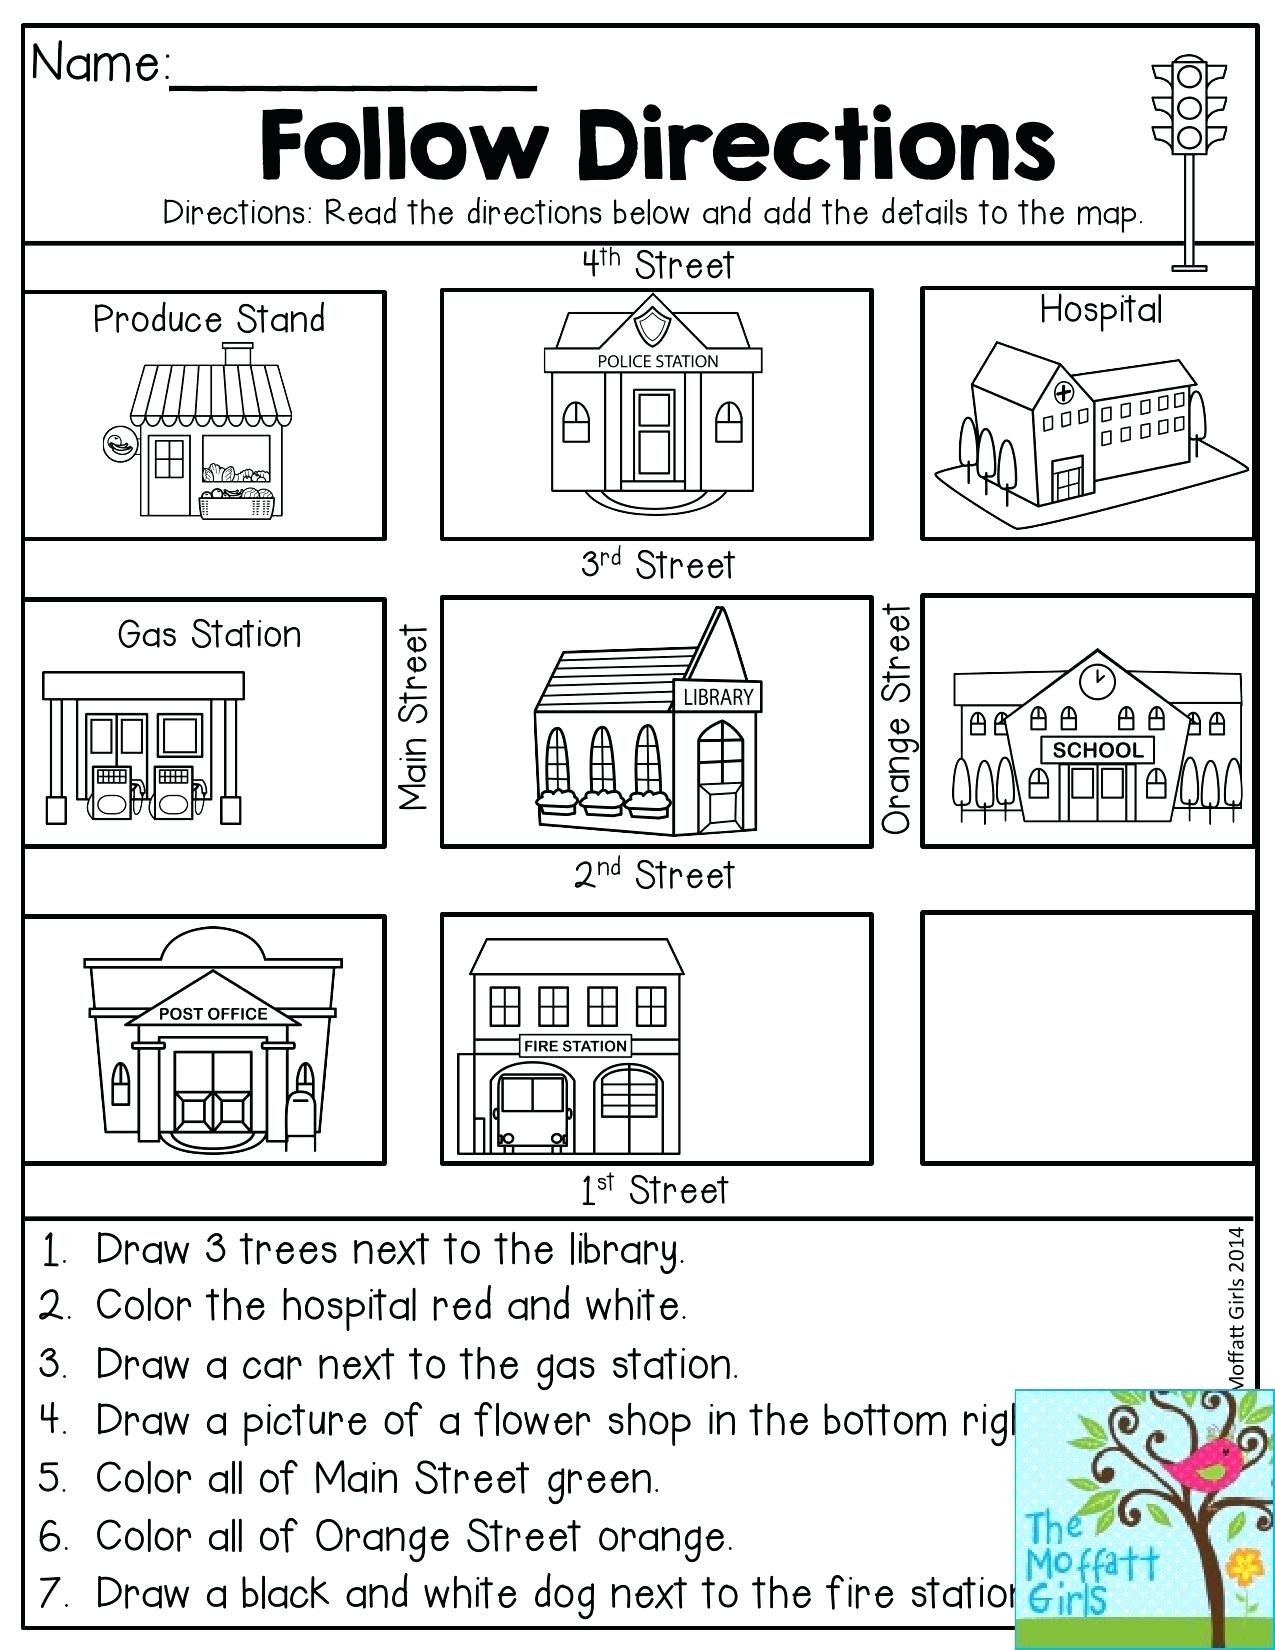 20 Map Skills Worksheets Answers